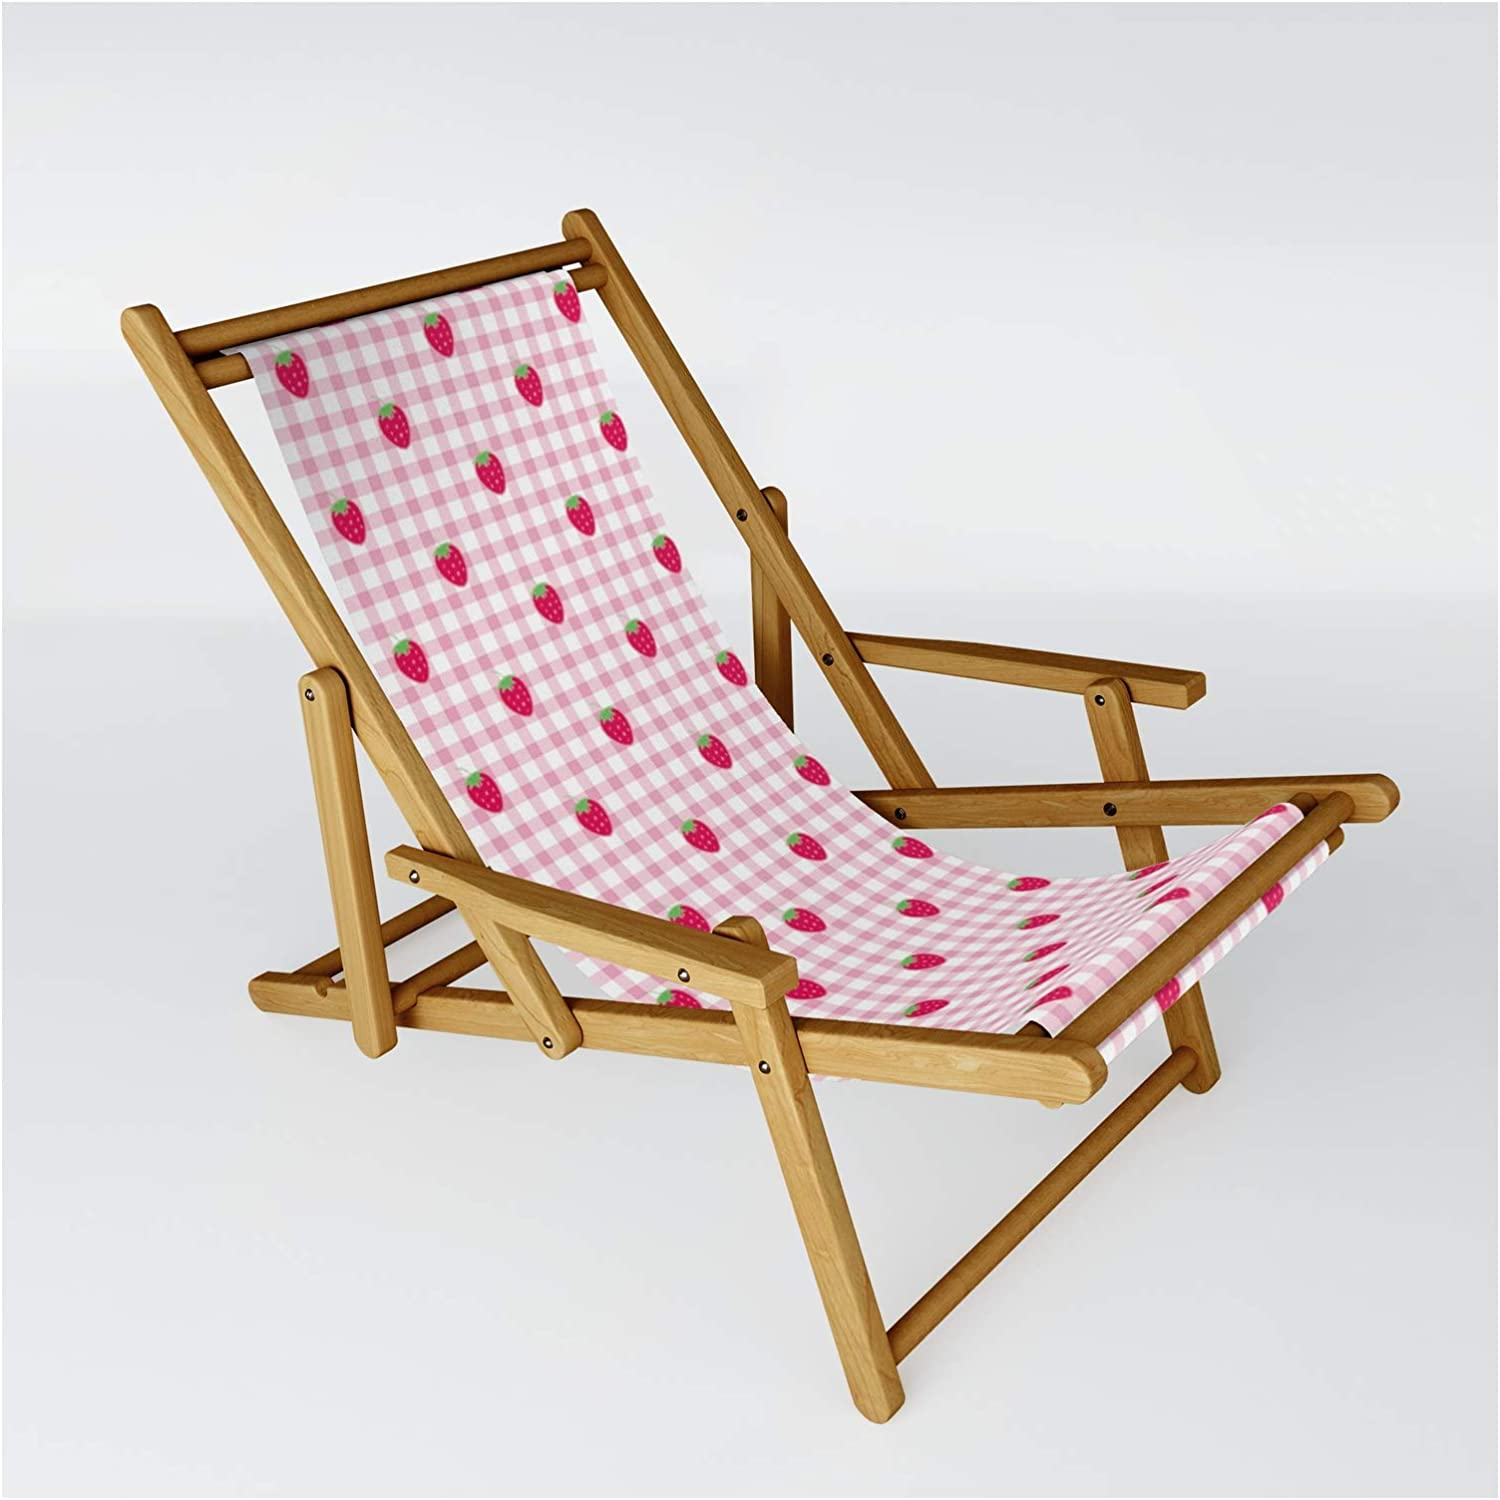 Society6 Strawberry Picnic Pattern Pink Usha5o Chair Max 41% OFF on Super sale Sling by